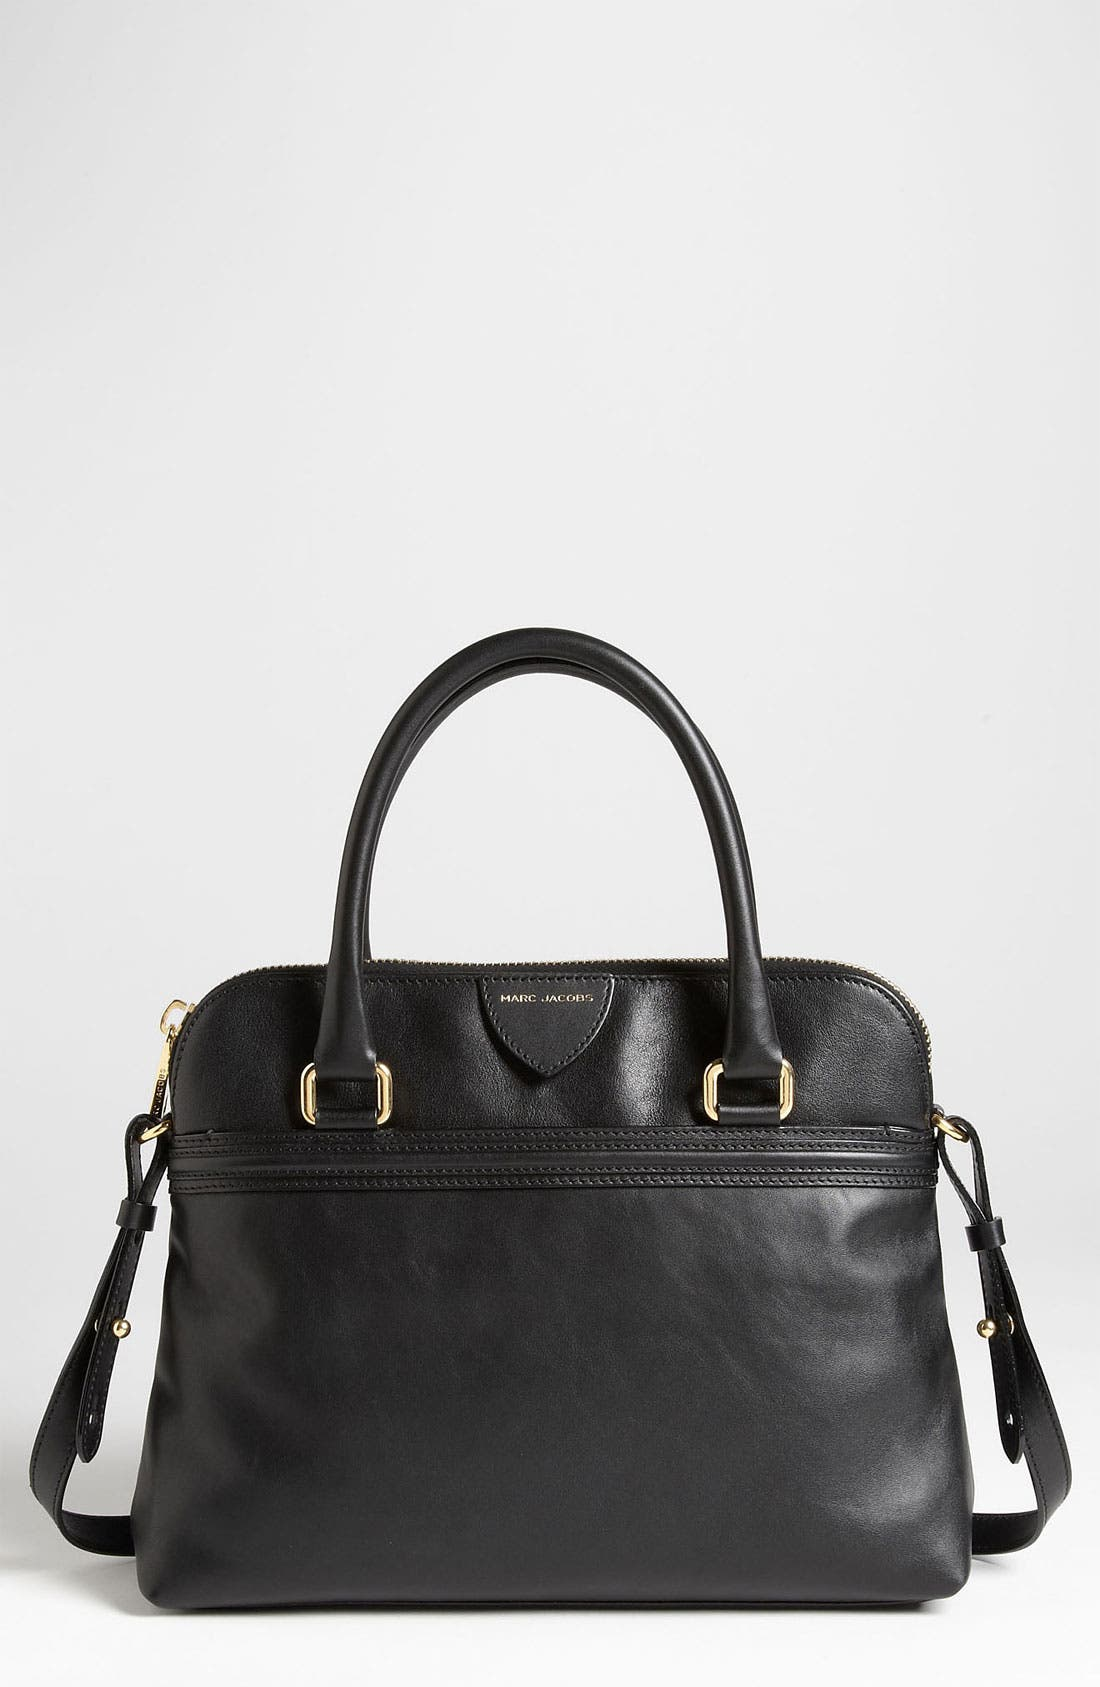 Main Image - MARC JACOBS 'Raleigh Preston' Leather Satchel